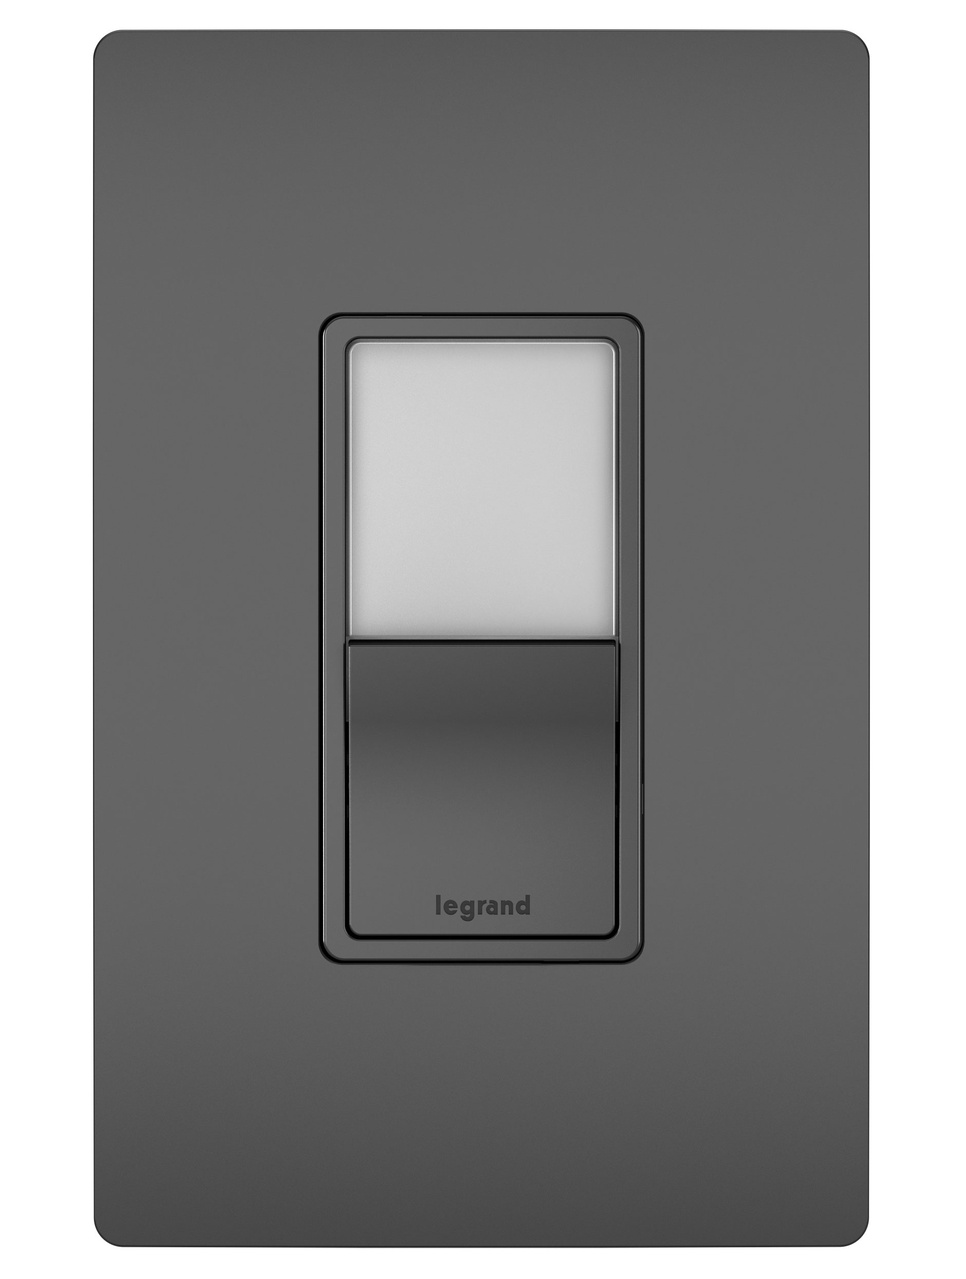 Night Light with Single-Pole, 3-Way Switch, Black